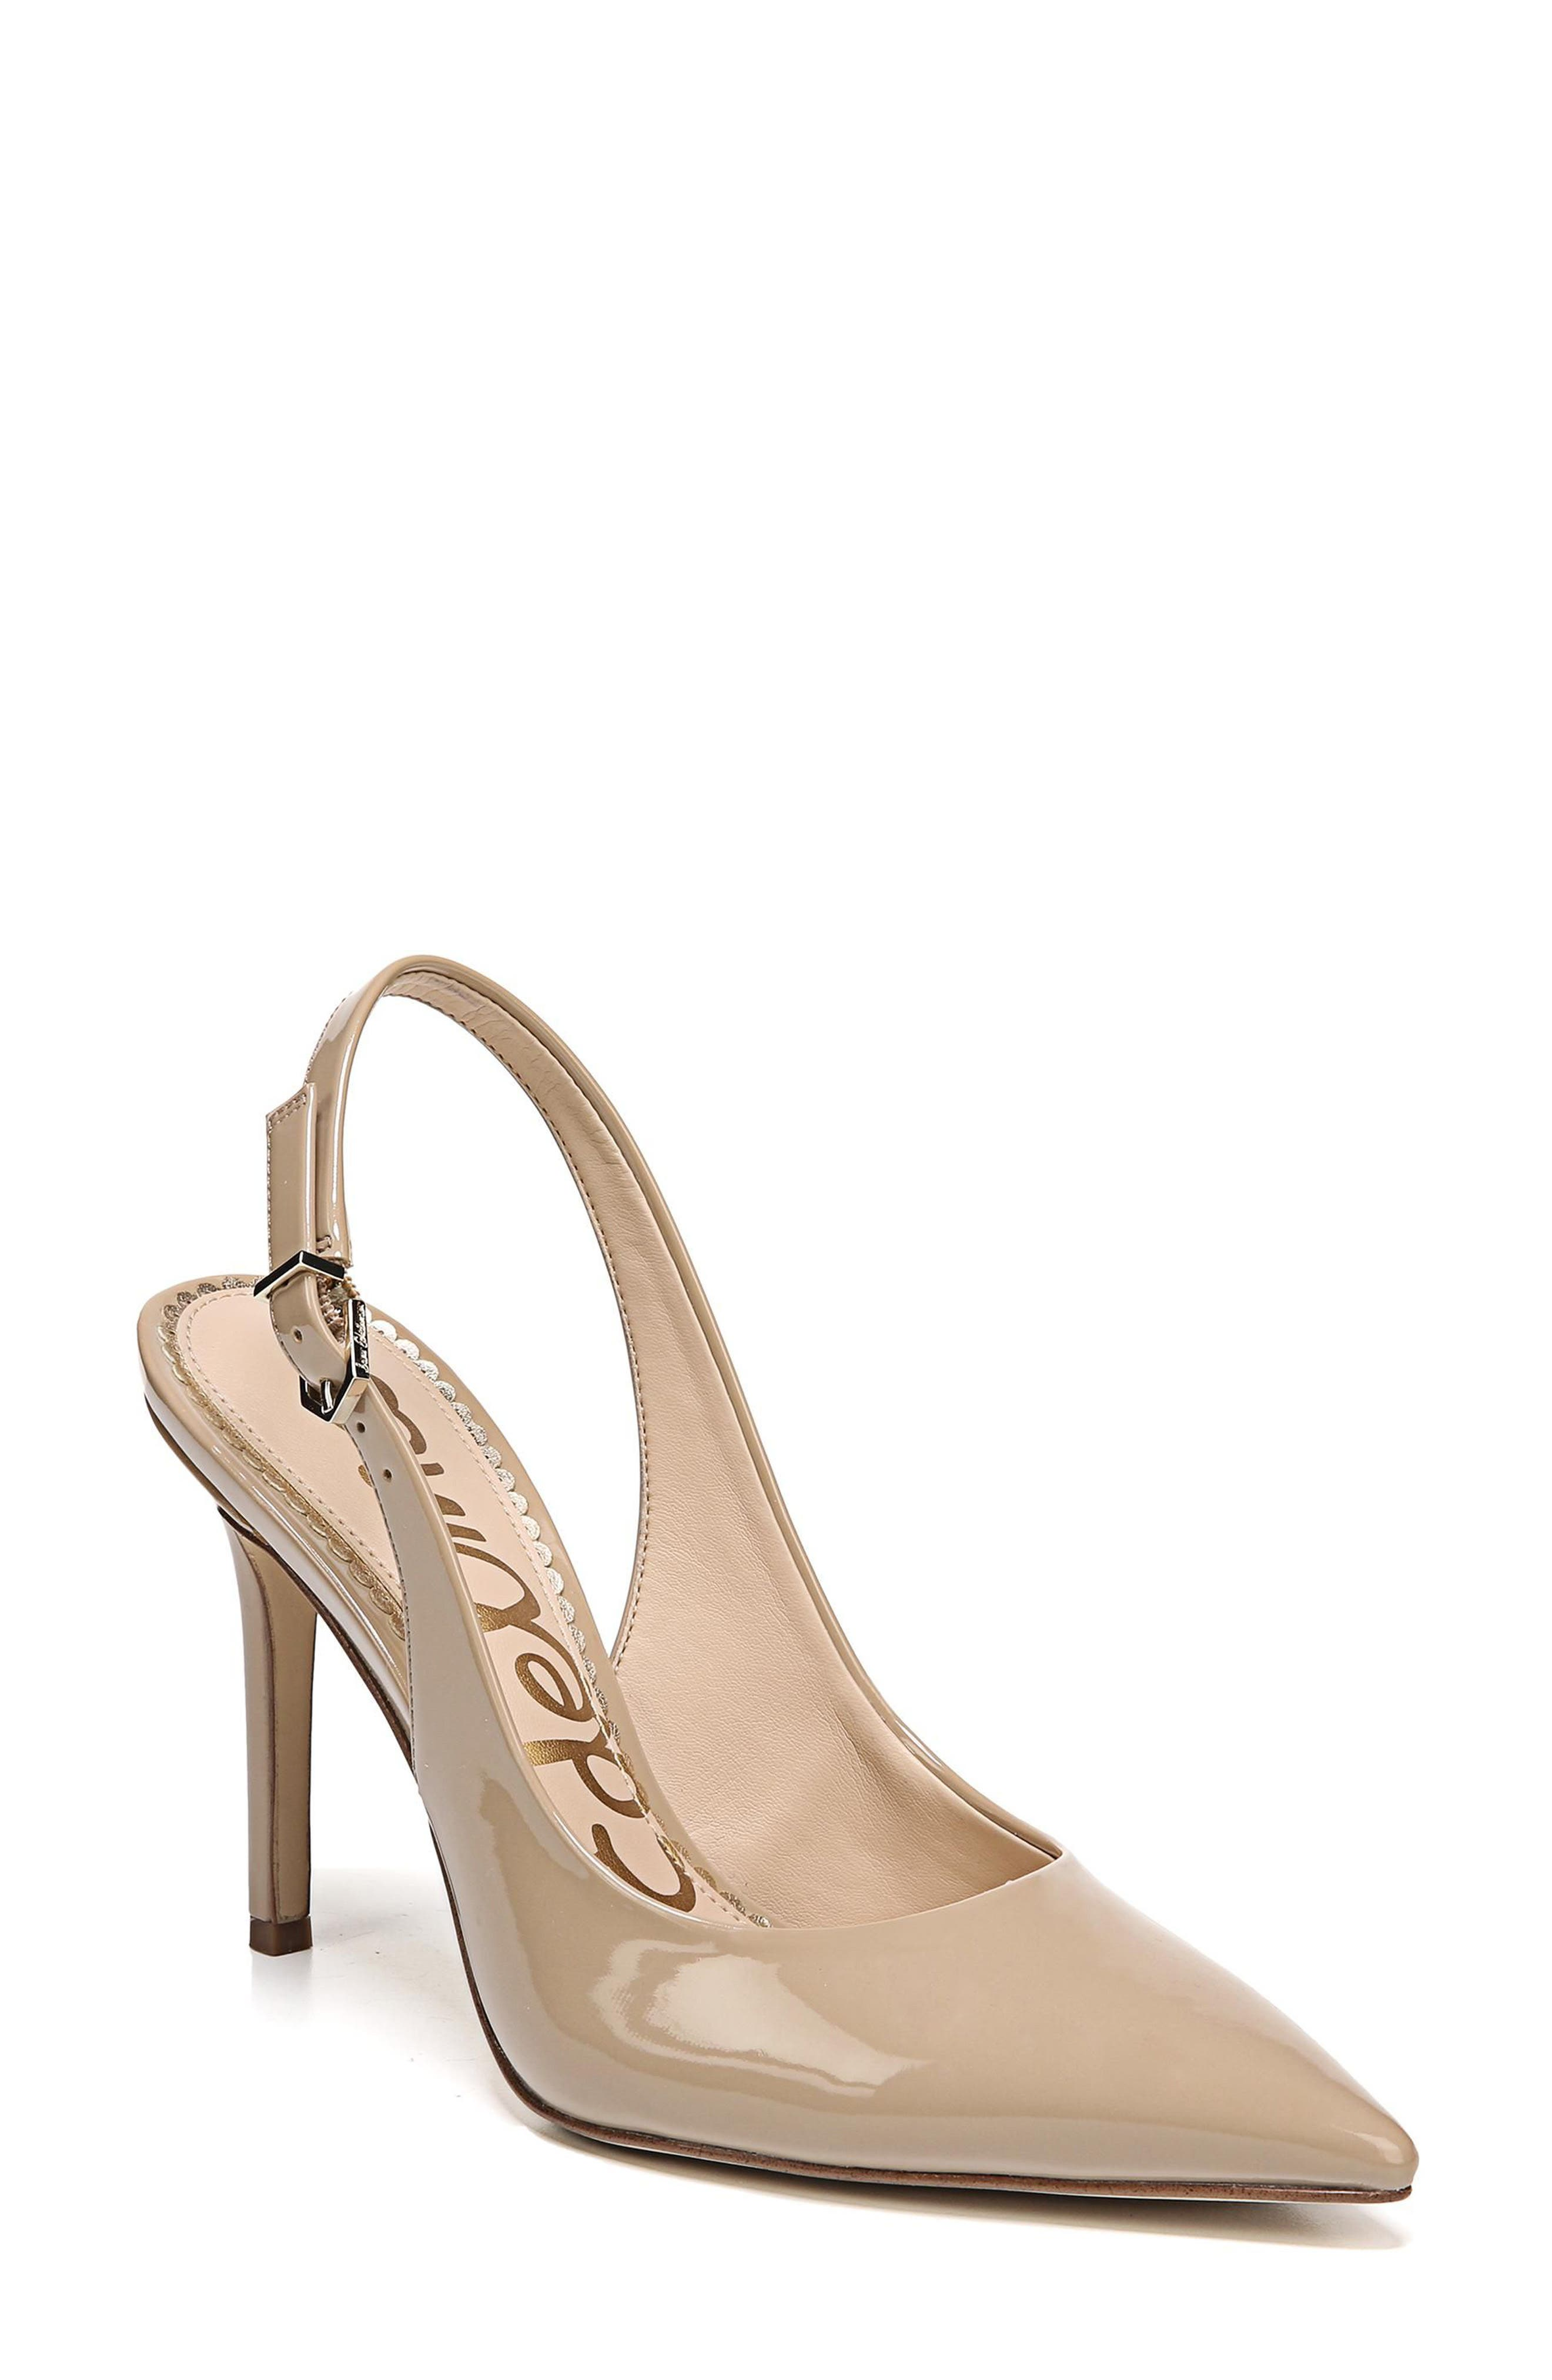 Hastings Slingback Pump,                             Main thumbnail 1, color,                             Classic Nude Patent Leather